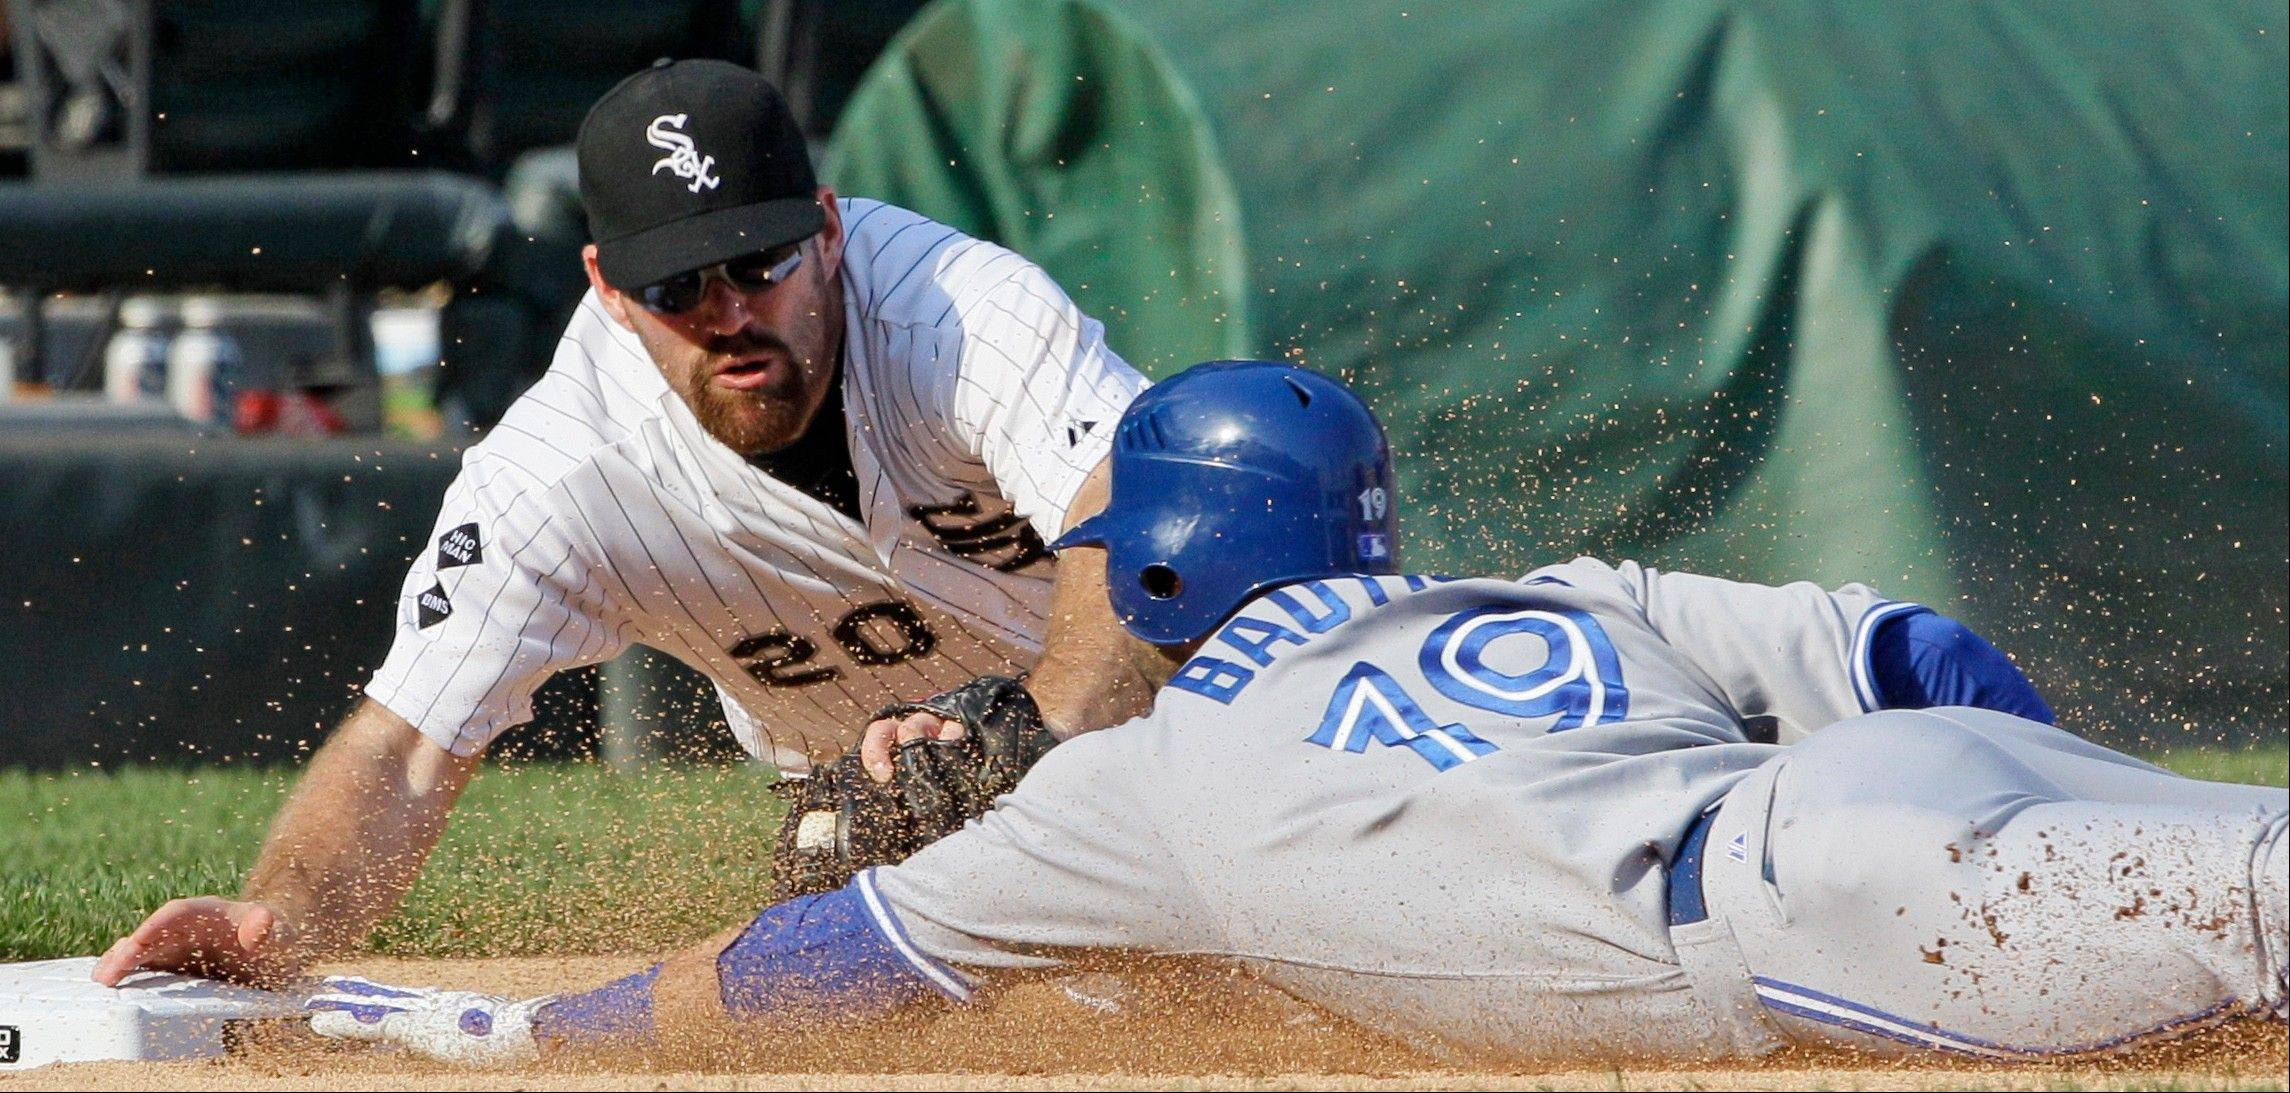 White Sox third baseman Kevin Youkilis tags out the Blue Jays' Jose Bautista in the ninth inning Saturday. It was Youkilis' 2-run homer in the fifth inning that tagged Toronto with the loss.